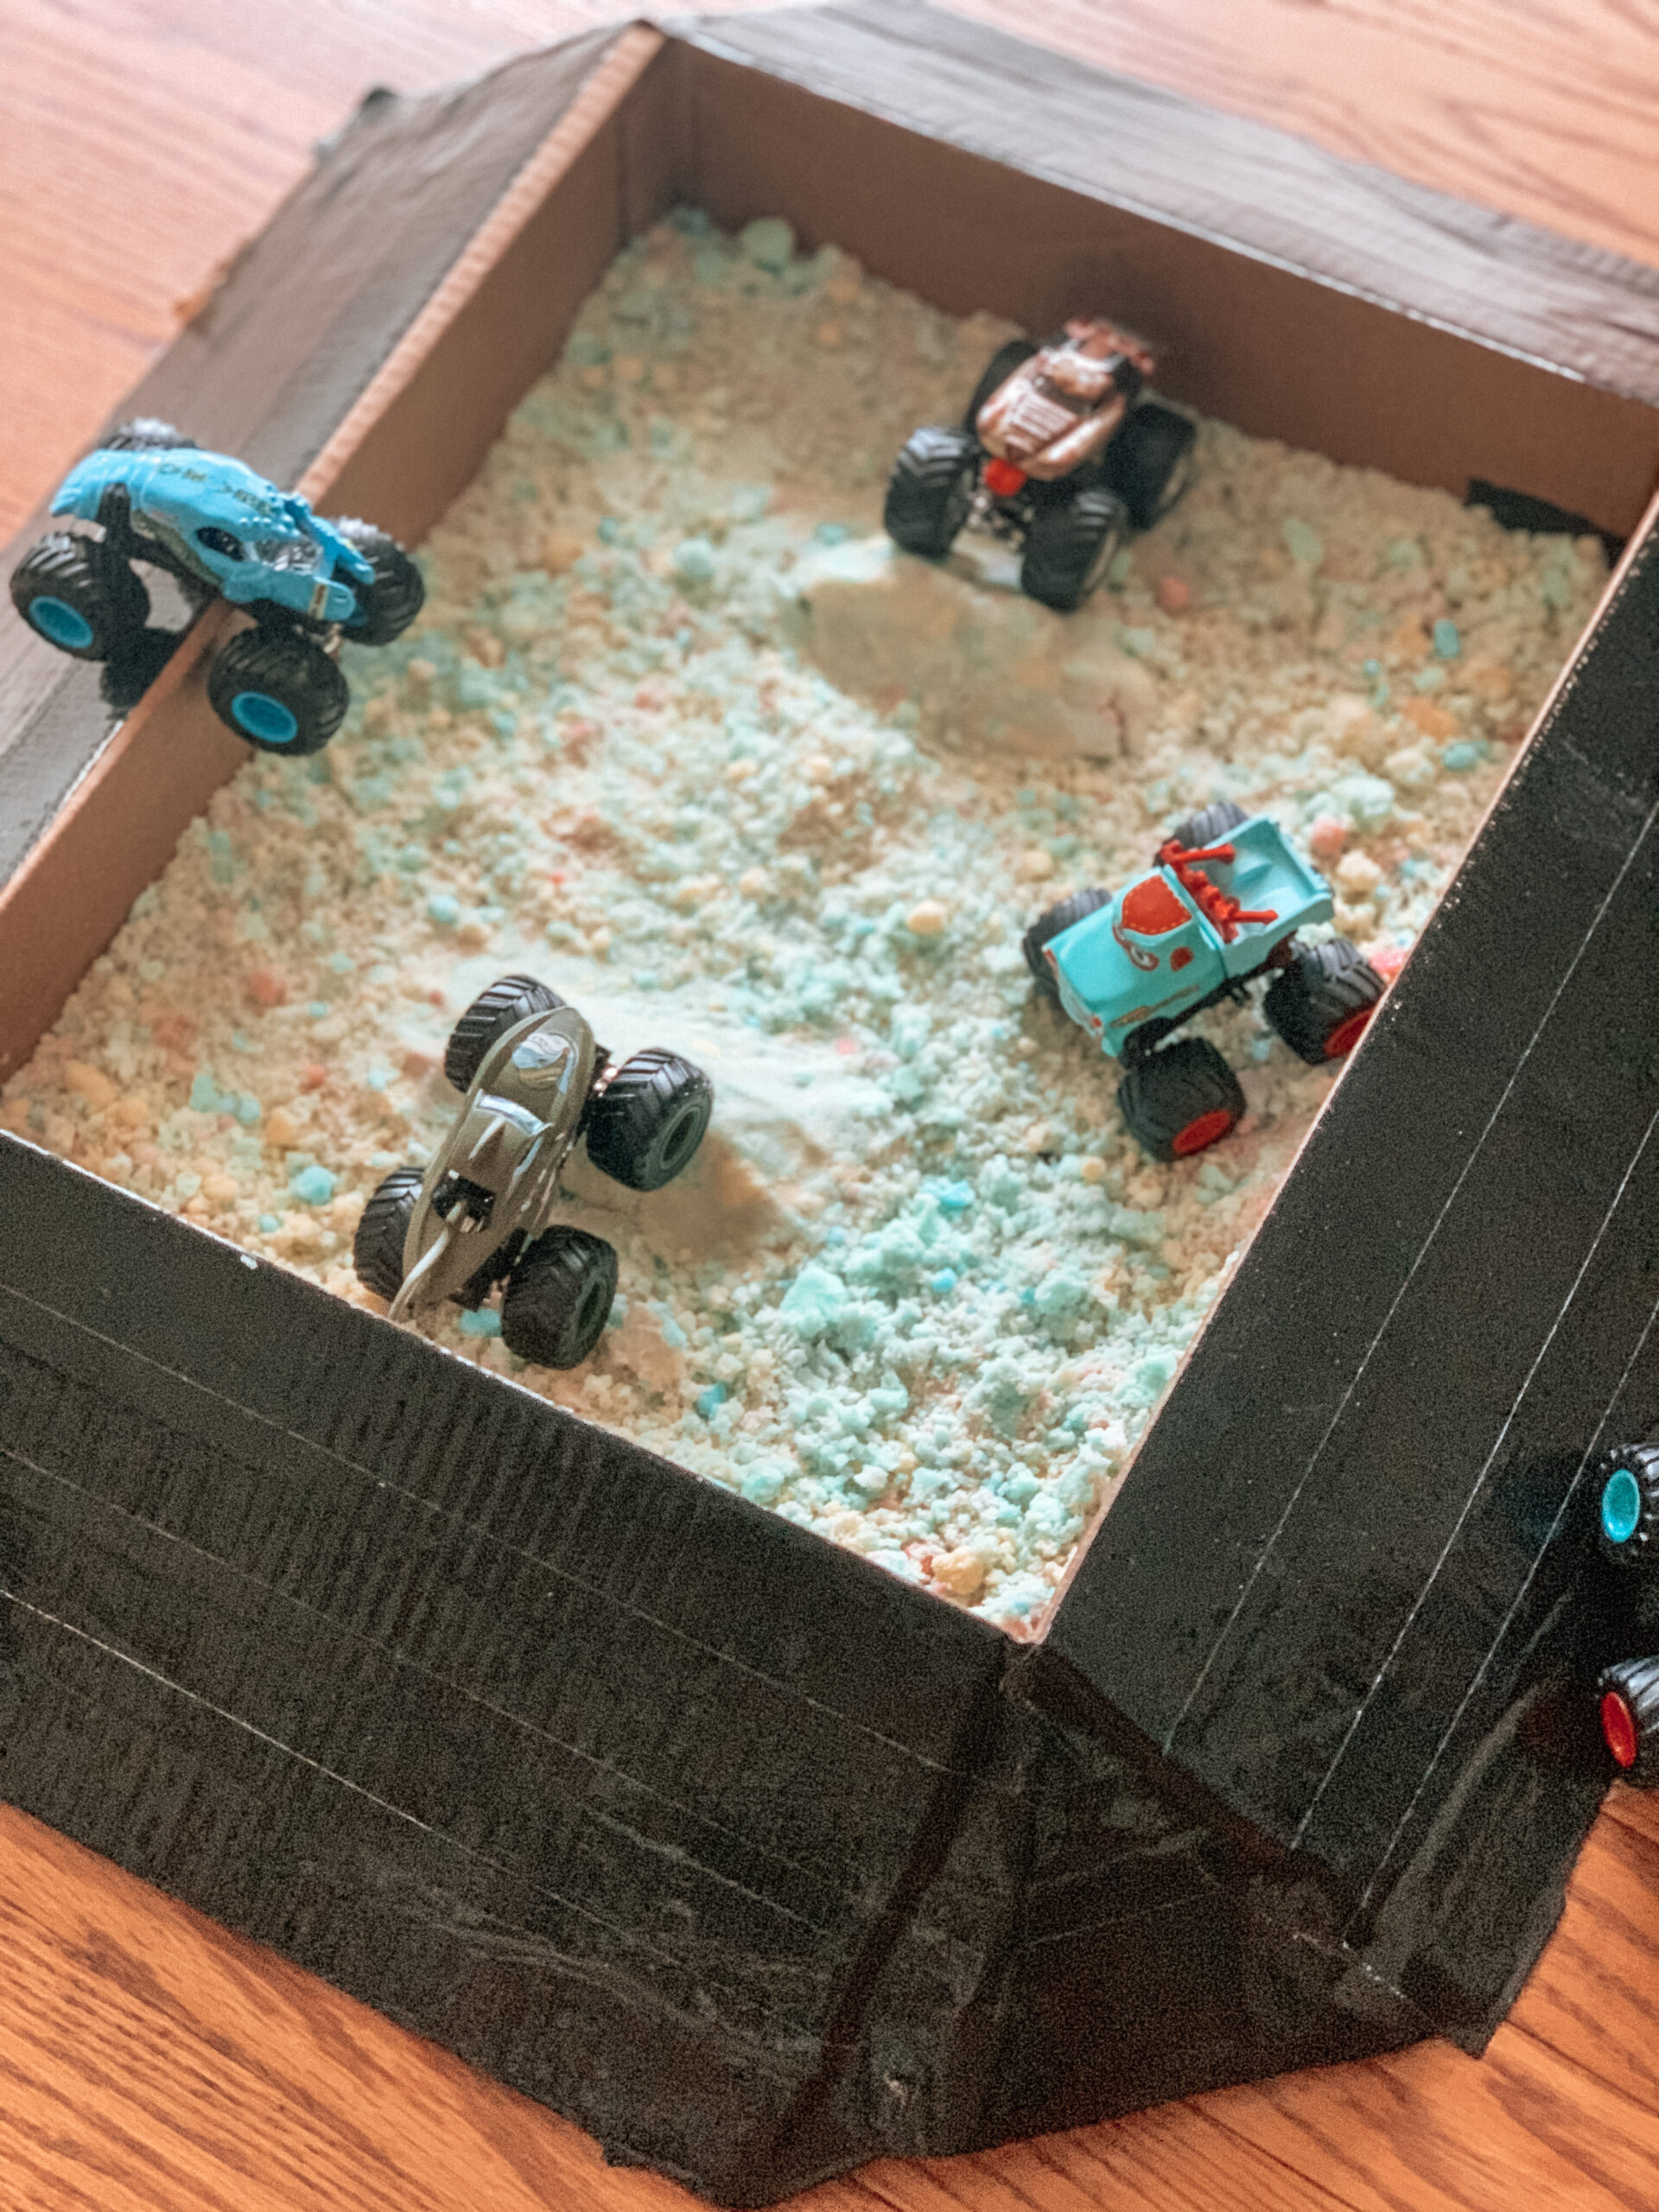 monster truck arena with DIY kinetic sand